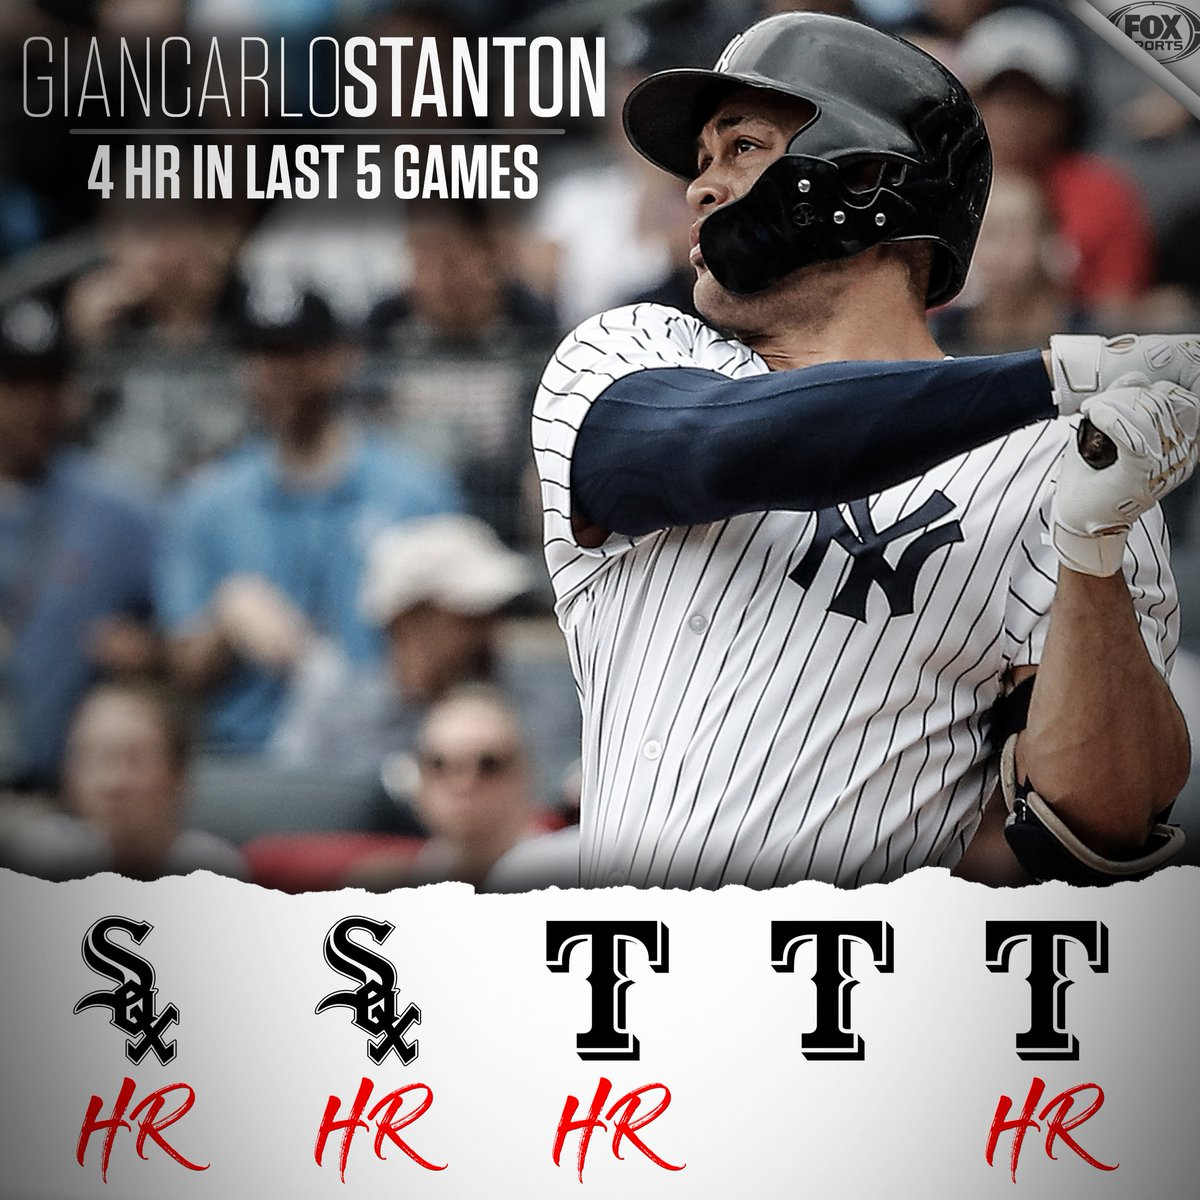 Stanton homers for the 4th time in 5 games.  Yankees win for the 5th time in 6 games.  #StartSpreadingTheNews